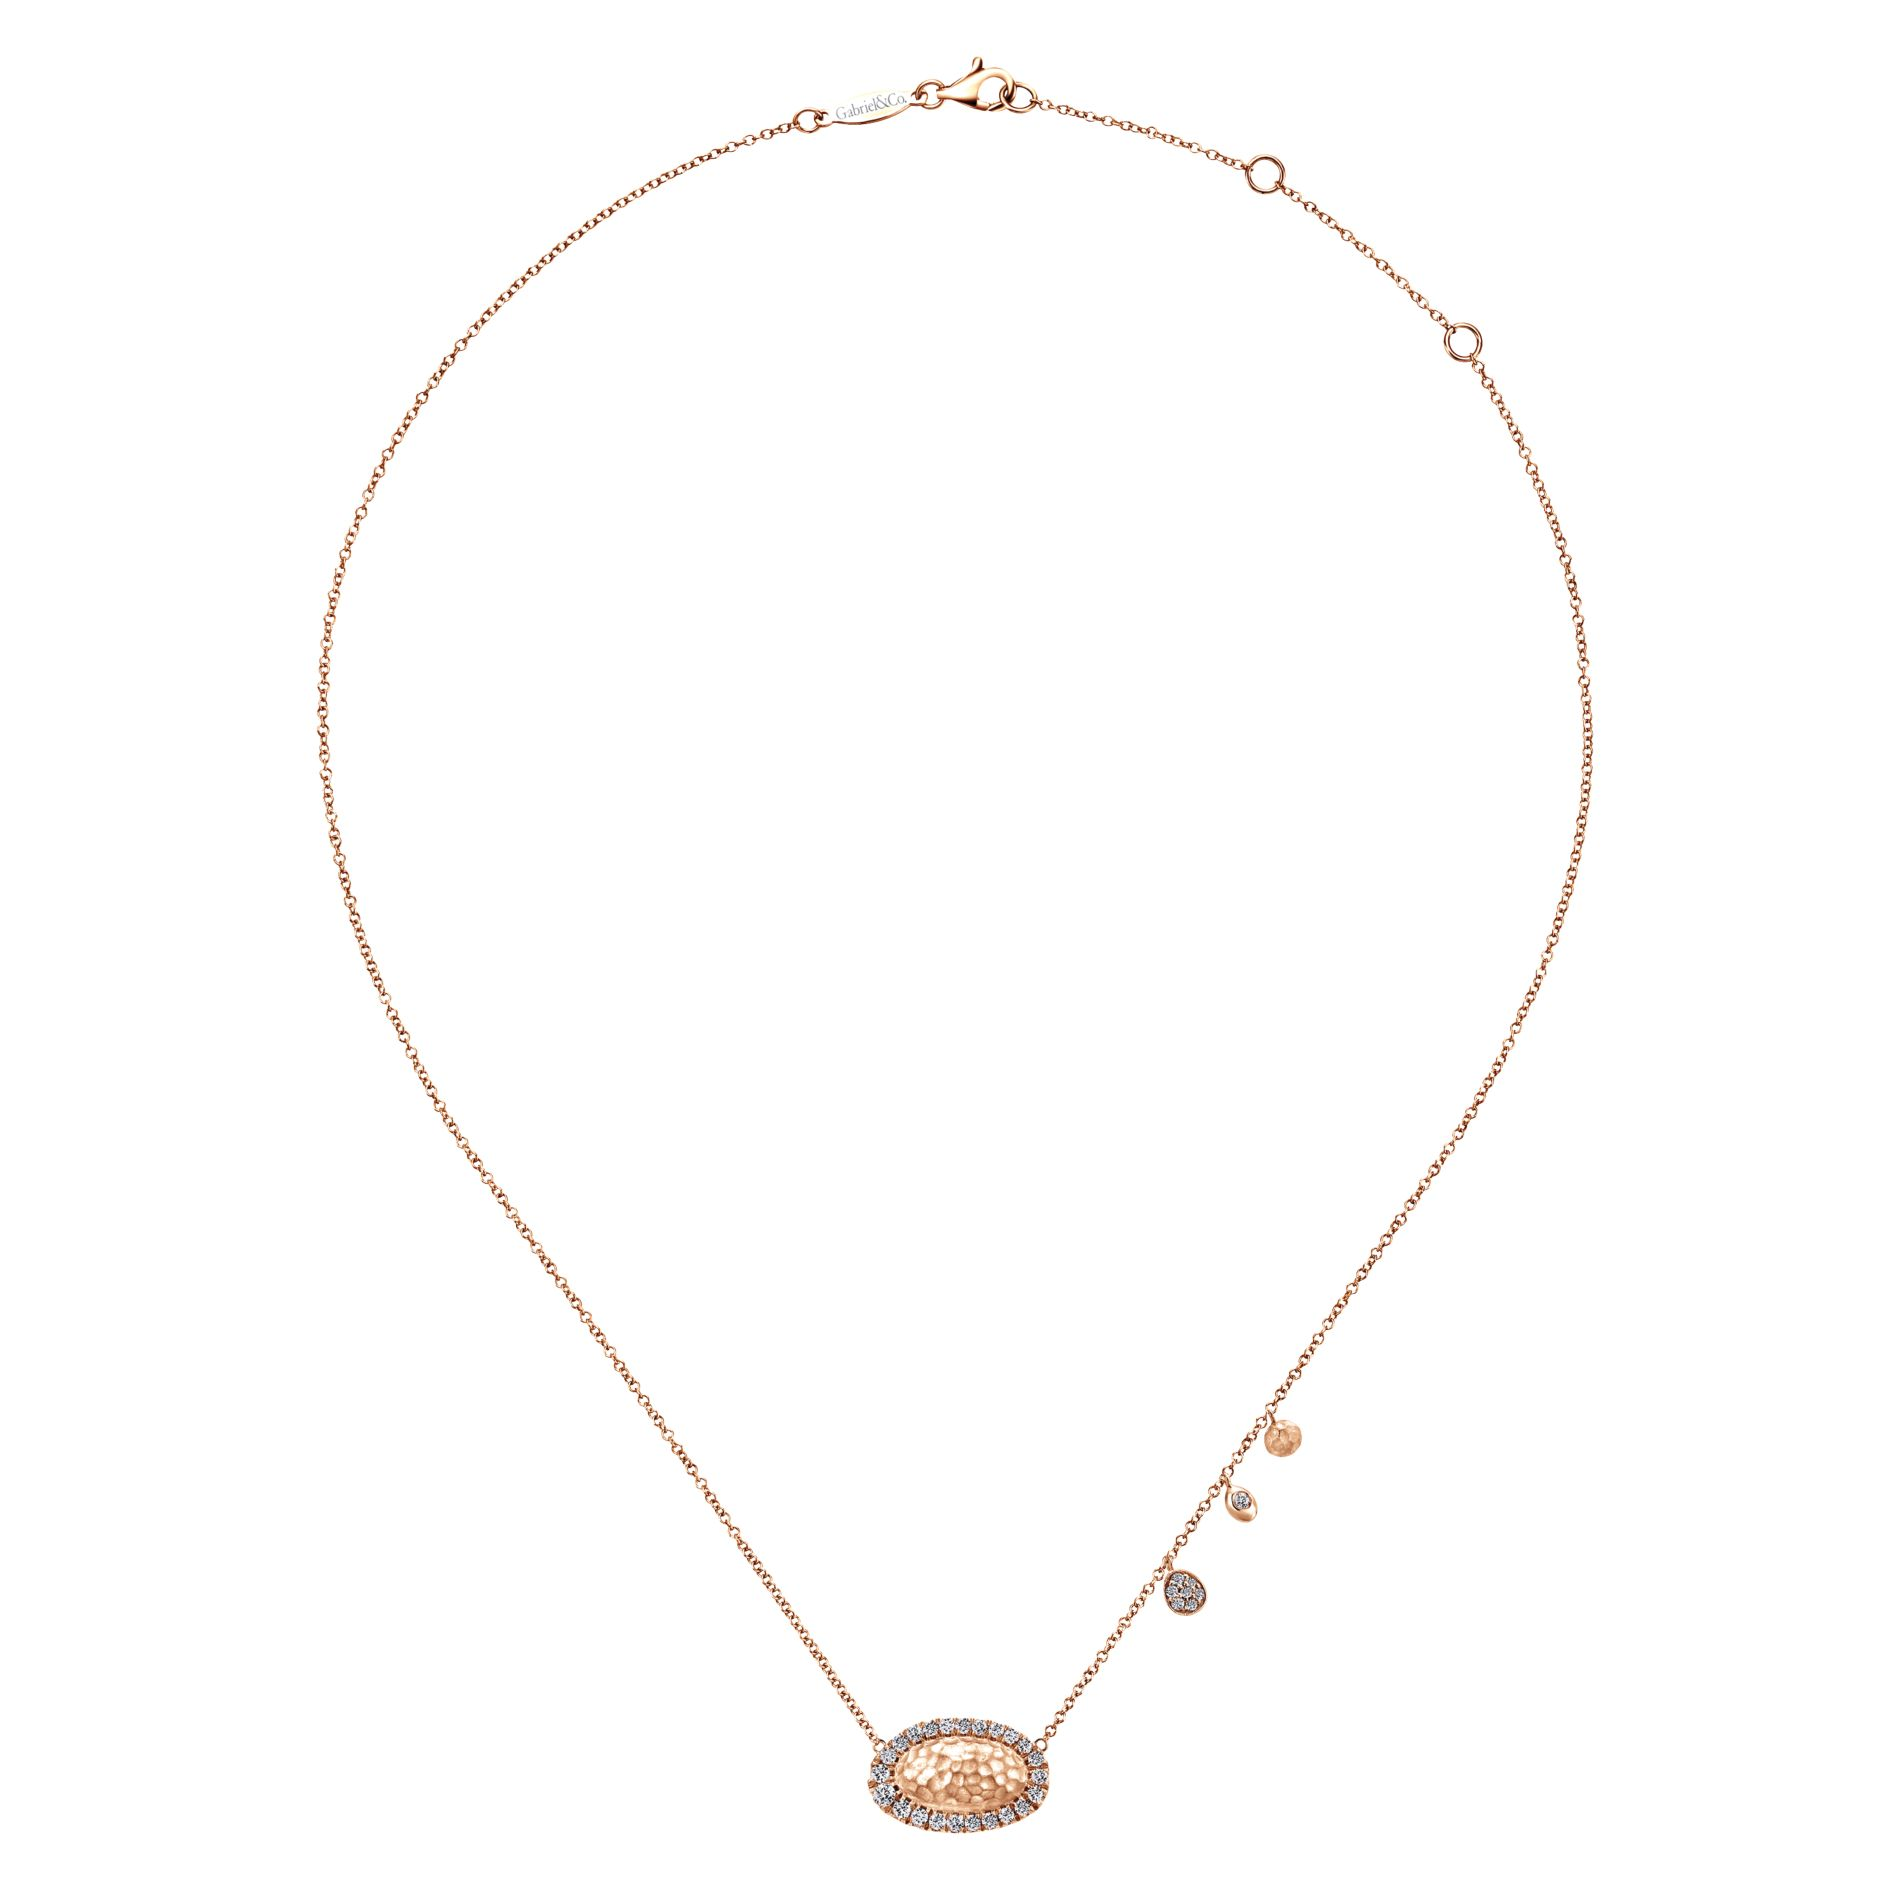 Necklaces - ROSE GOLD FASHION DIAMOND NECKLACE - image #2